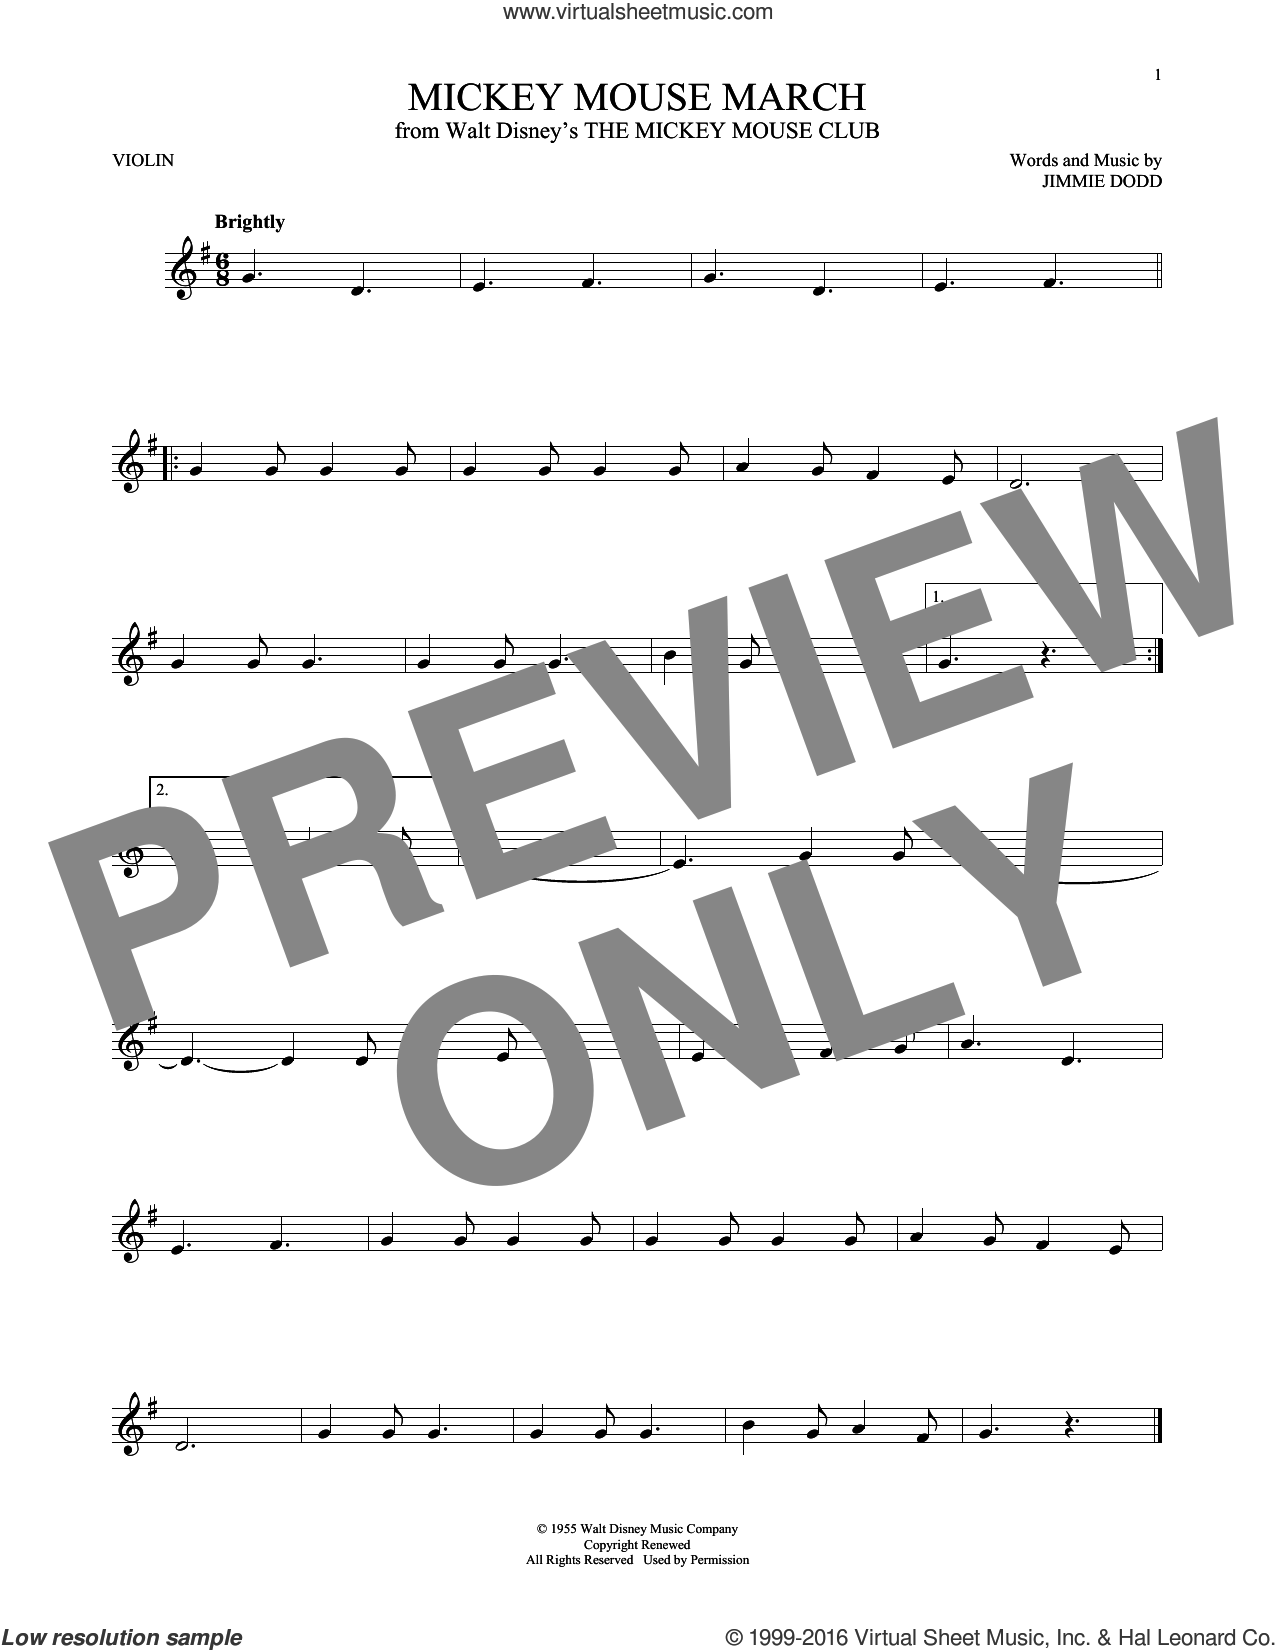 Mickey Mouse March sheet music for violin solo by Jimmie Dodd, intermediate skill level